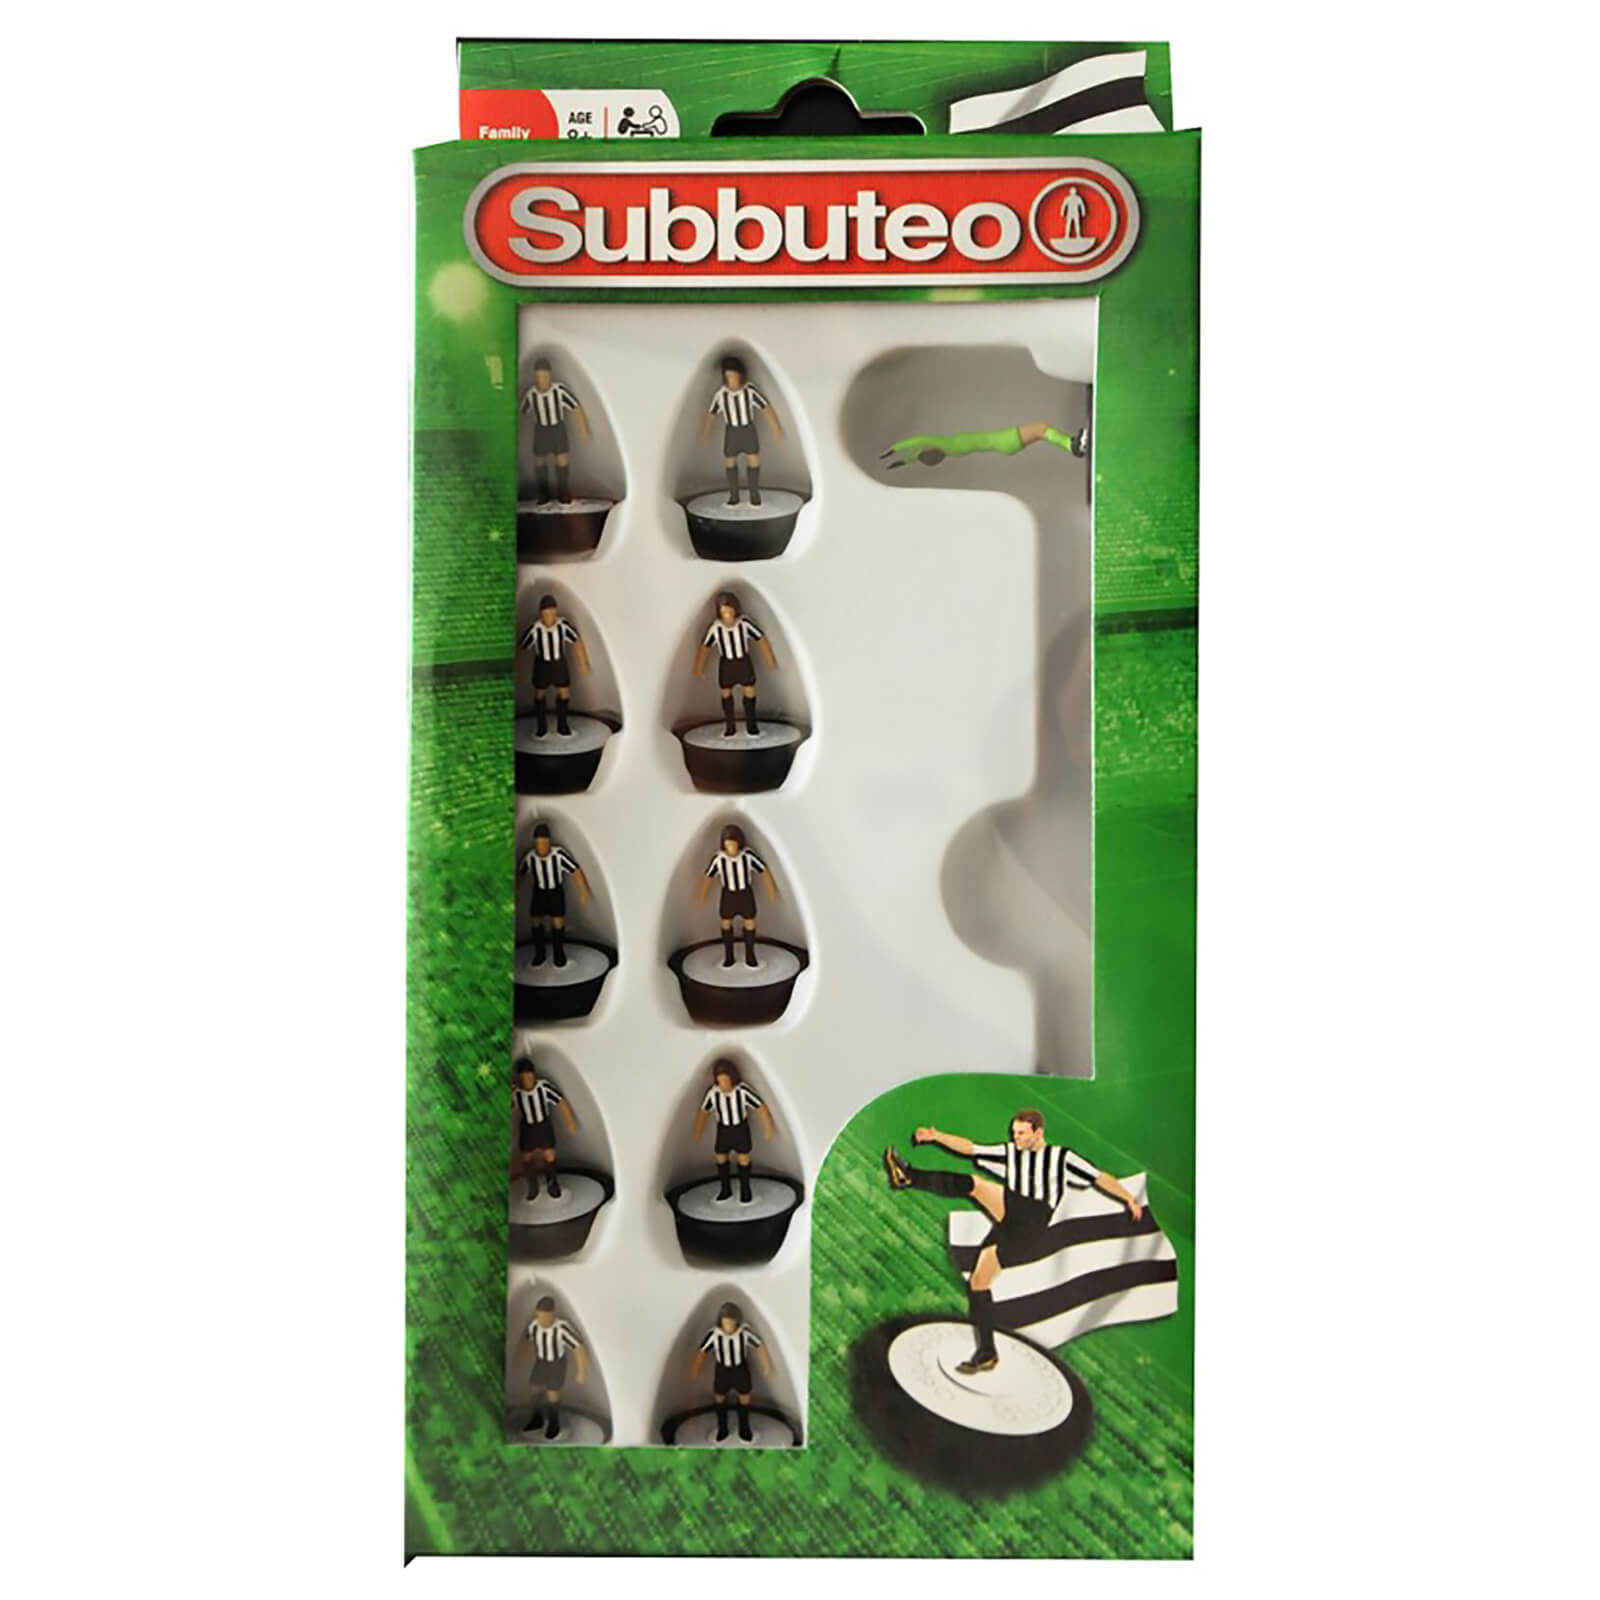 Subbeteo Black and White Team